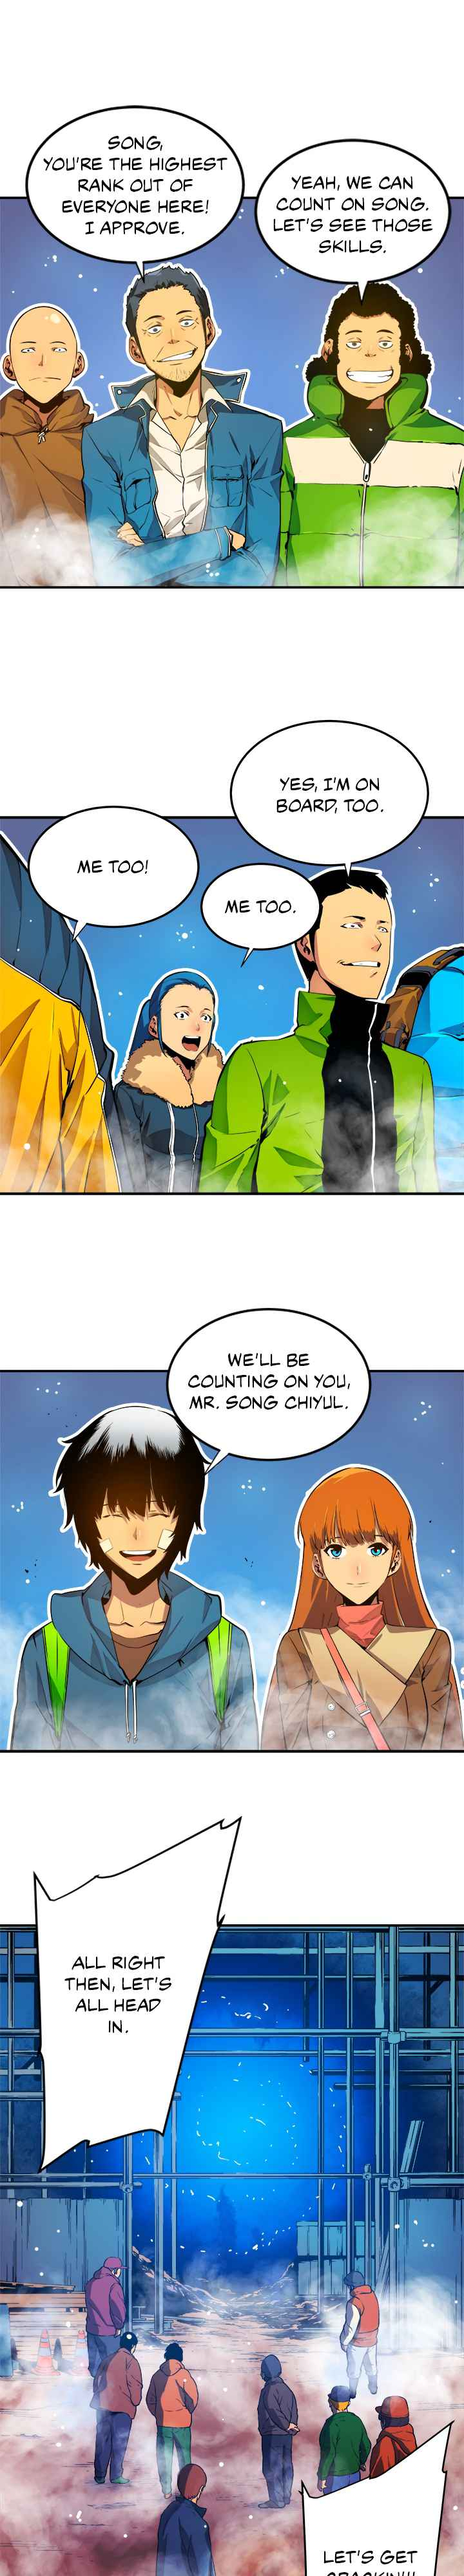 Solo Leveling Chapter 1 Page 19